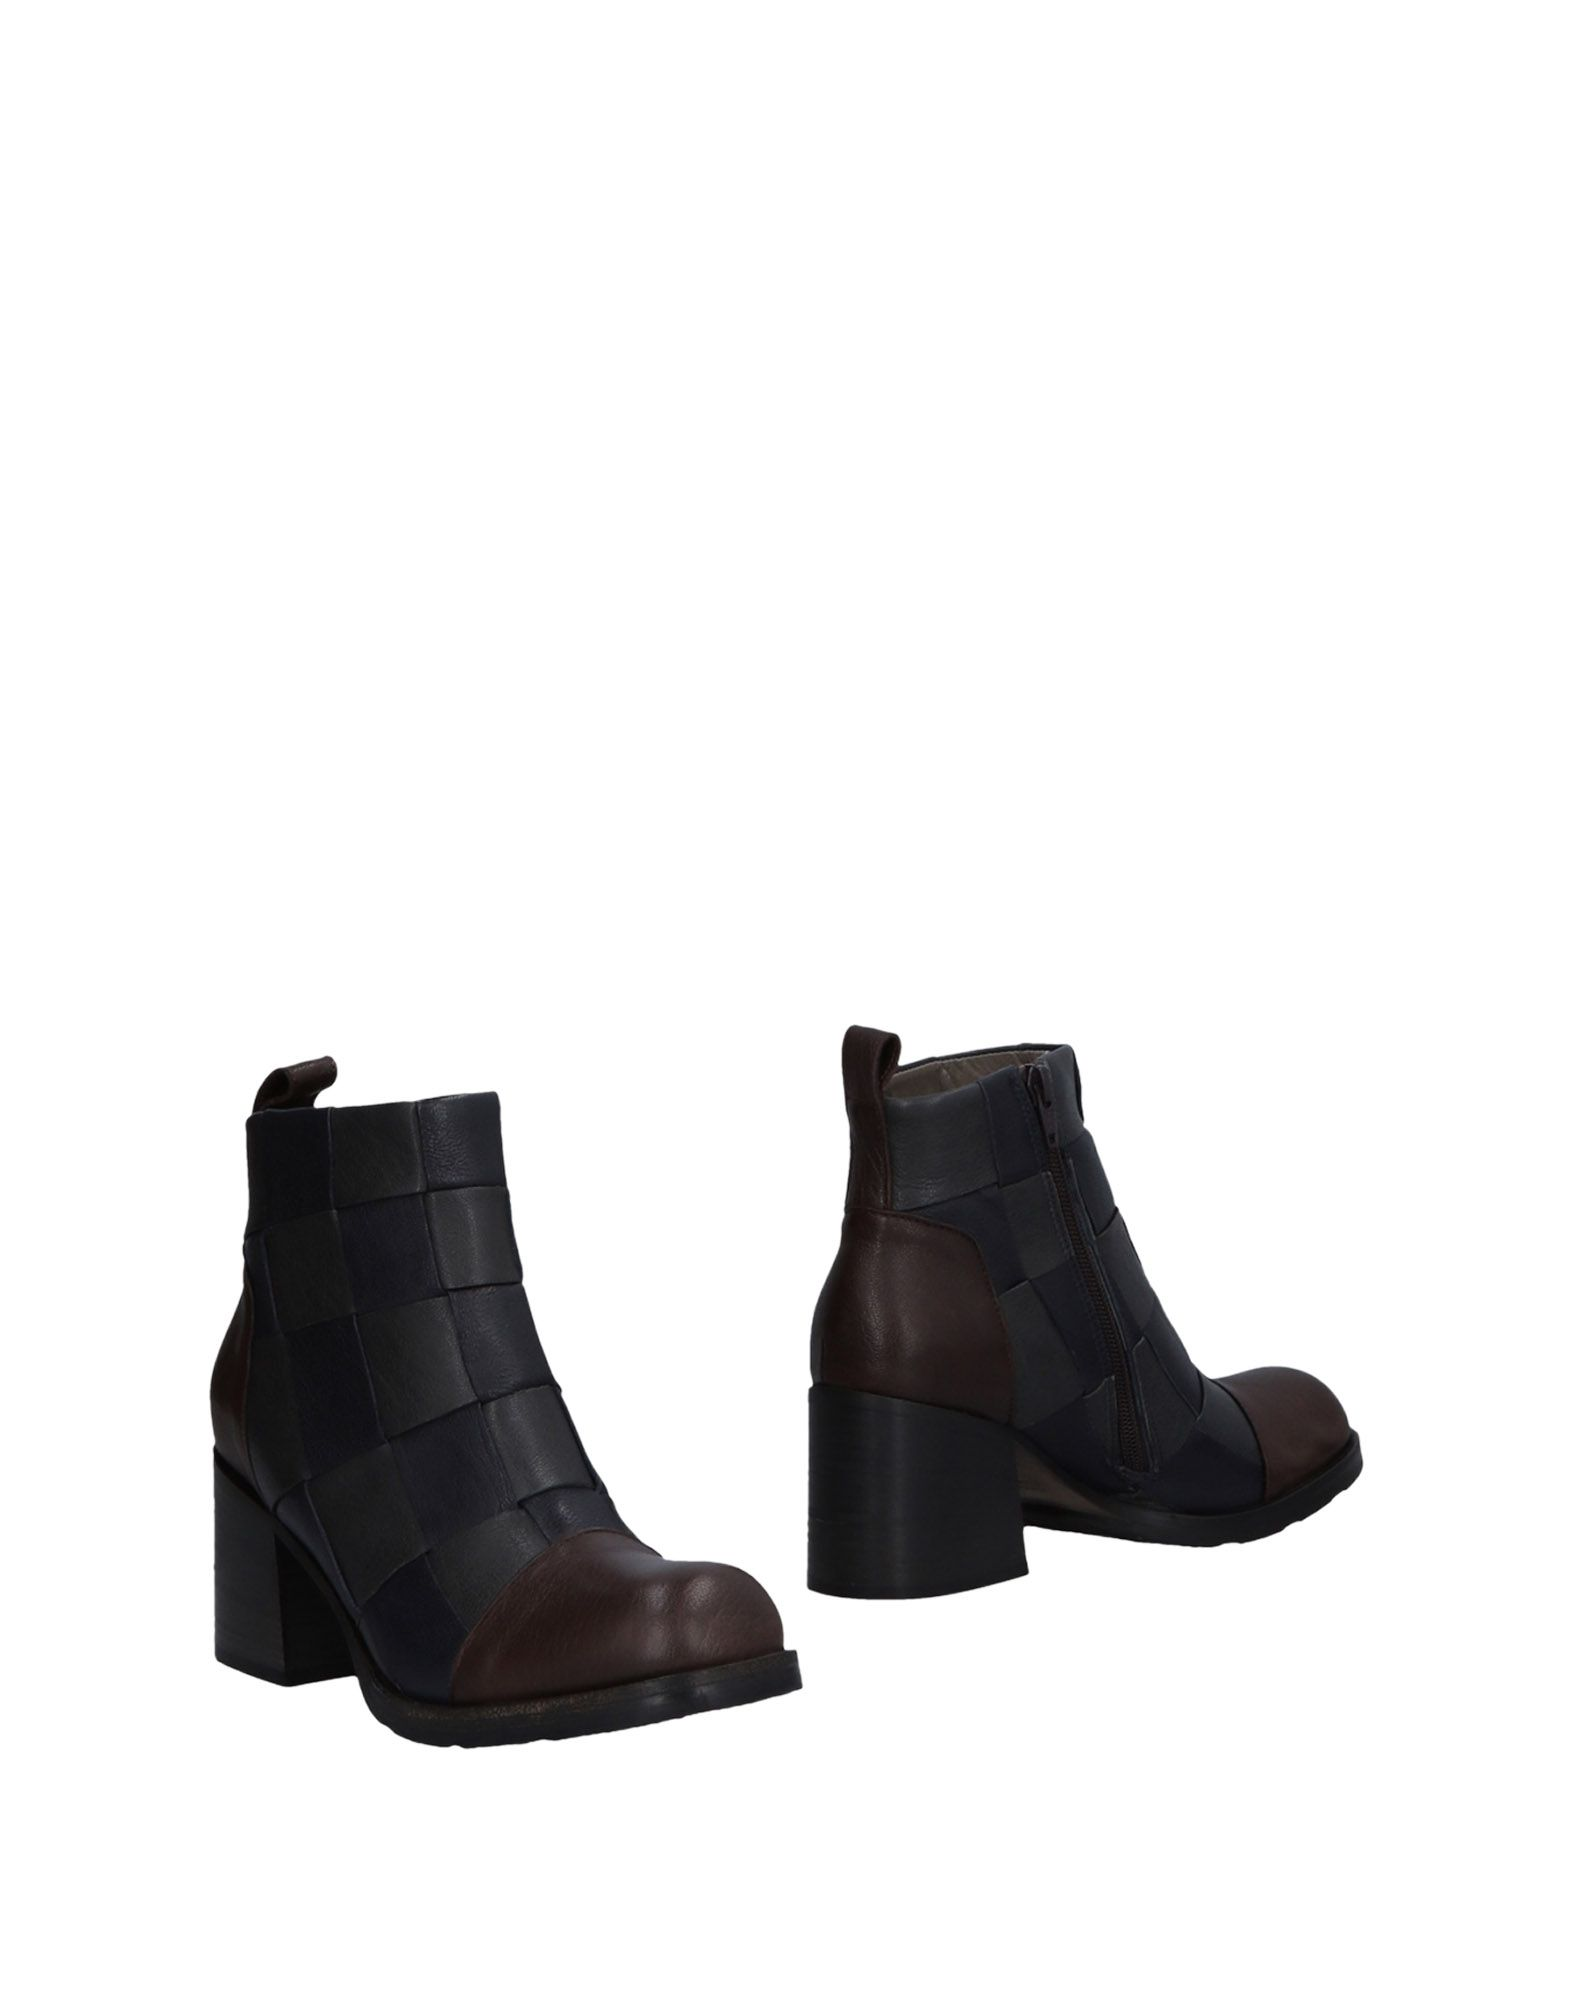 Ixos Ankle Boot - Women on Ixos Ankle Boots online on Women  Canada - 11474807KB 0f6620